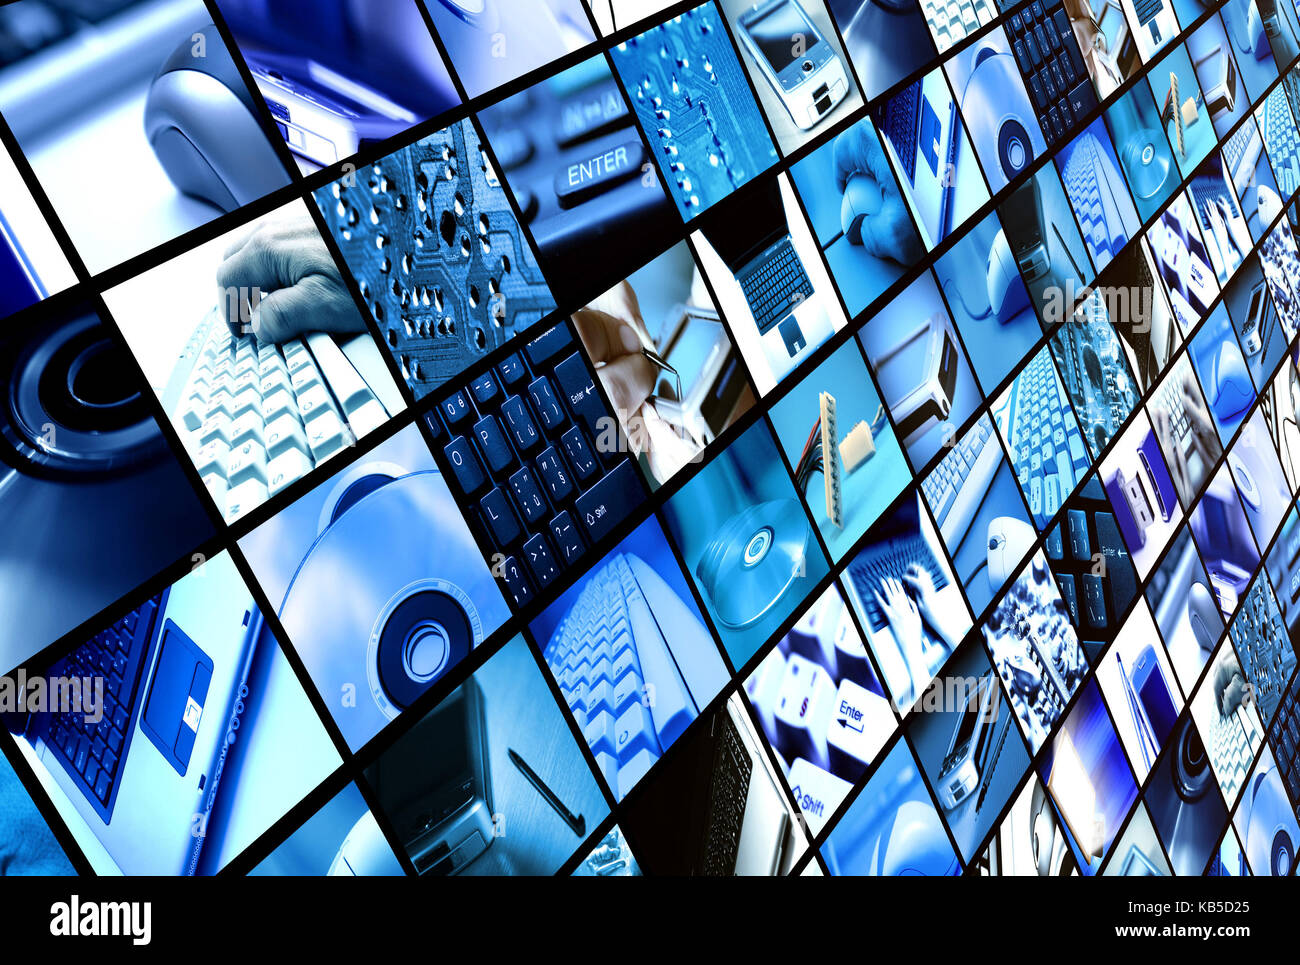 many screens with technology related objects - Stock Image